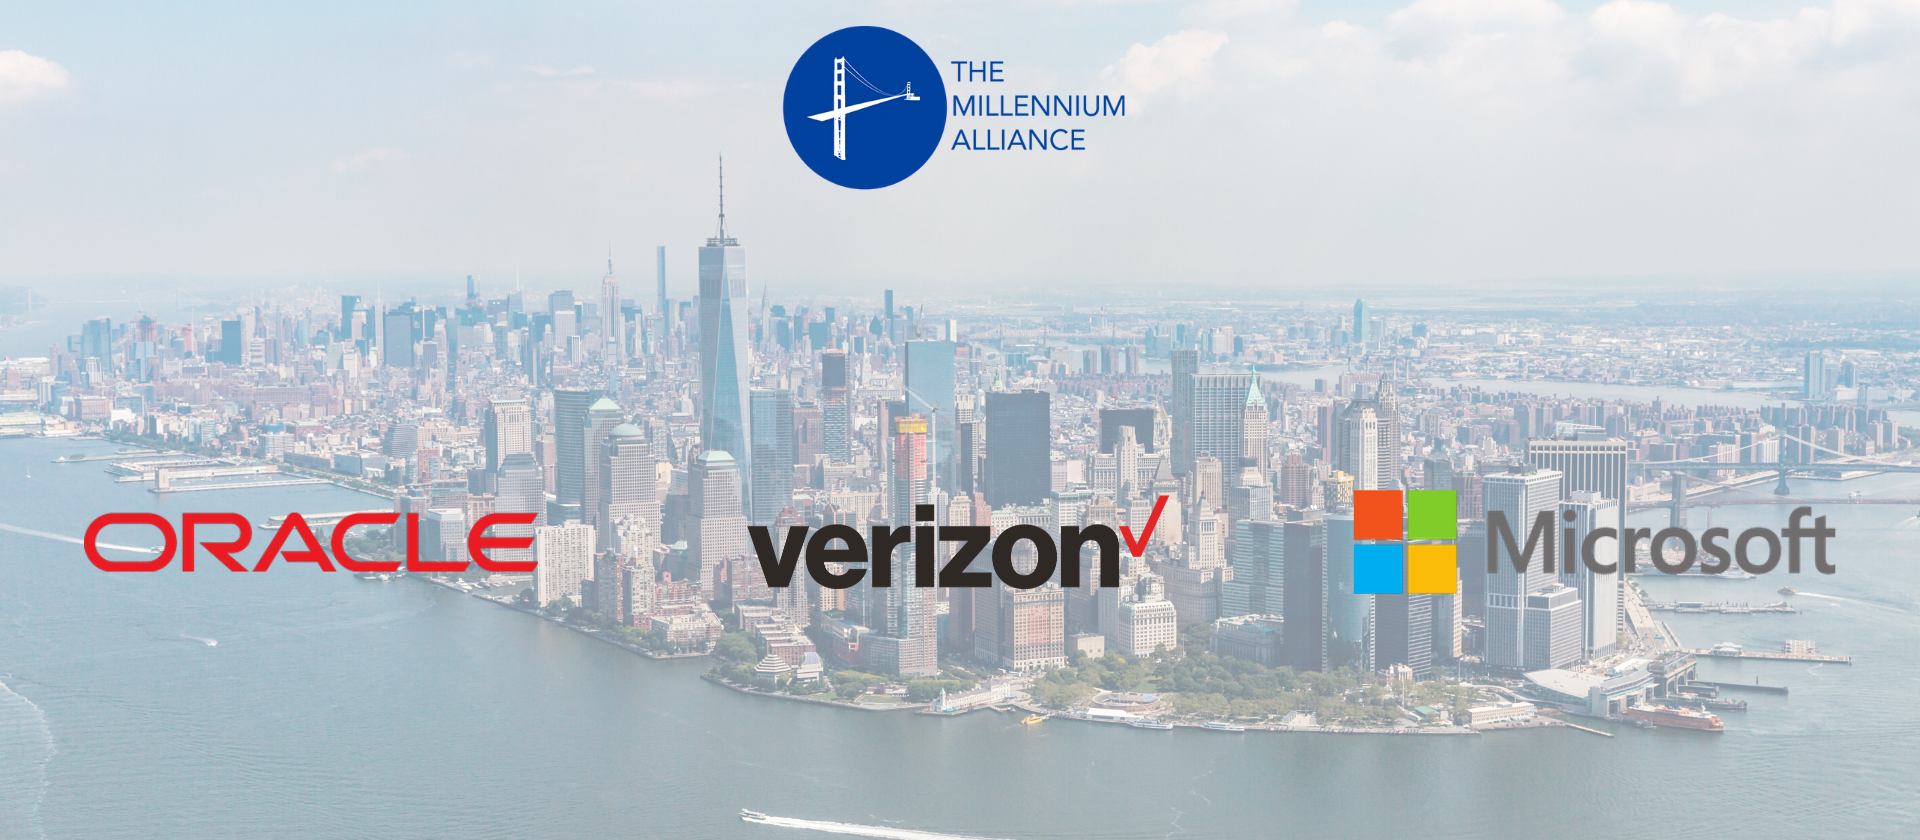 Millennium Alliance Partnerships Oracle Verizon Microsoft New York Skyline